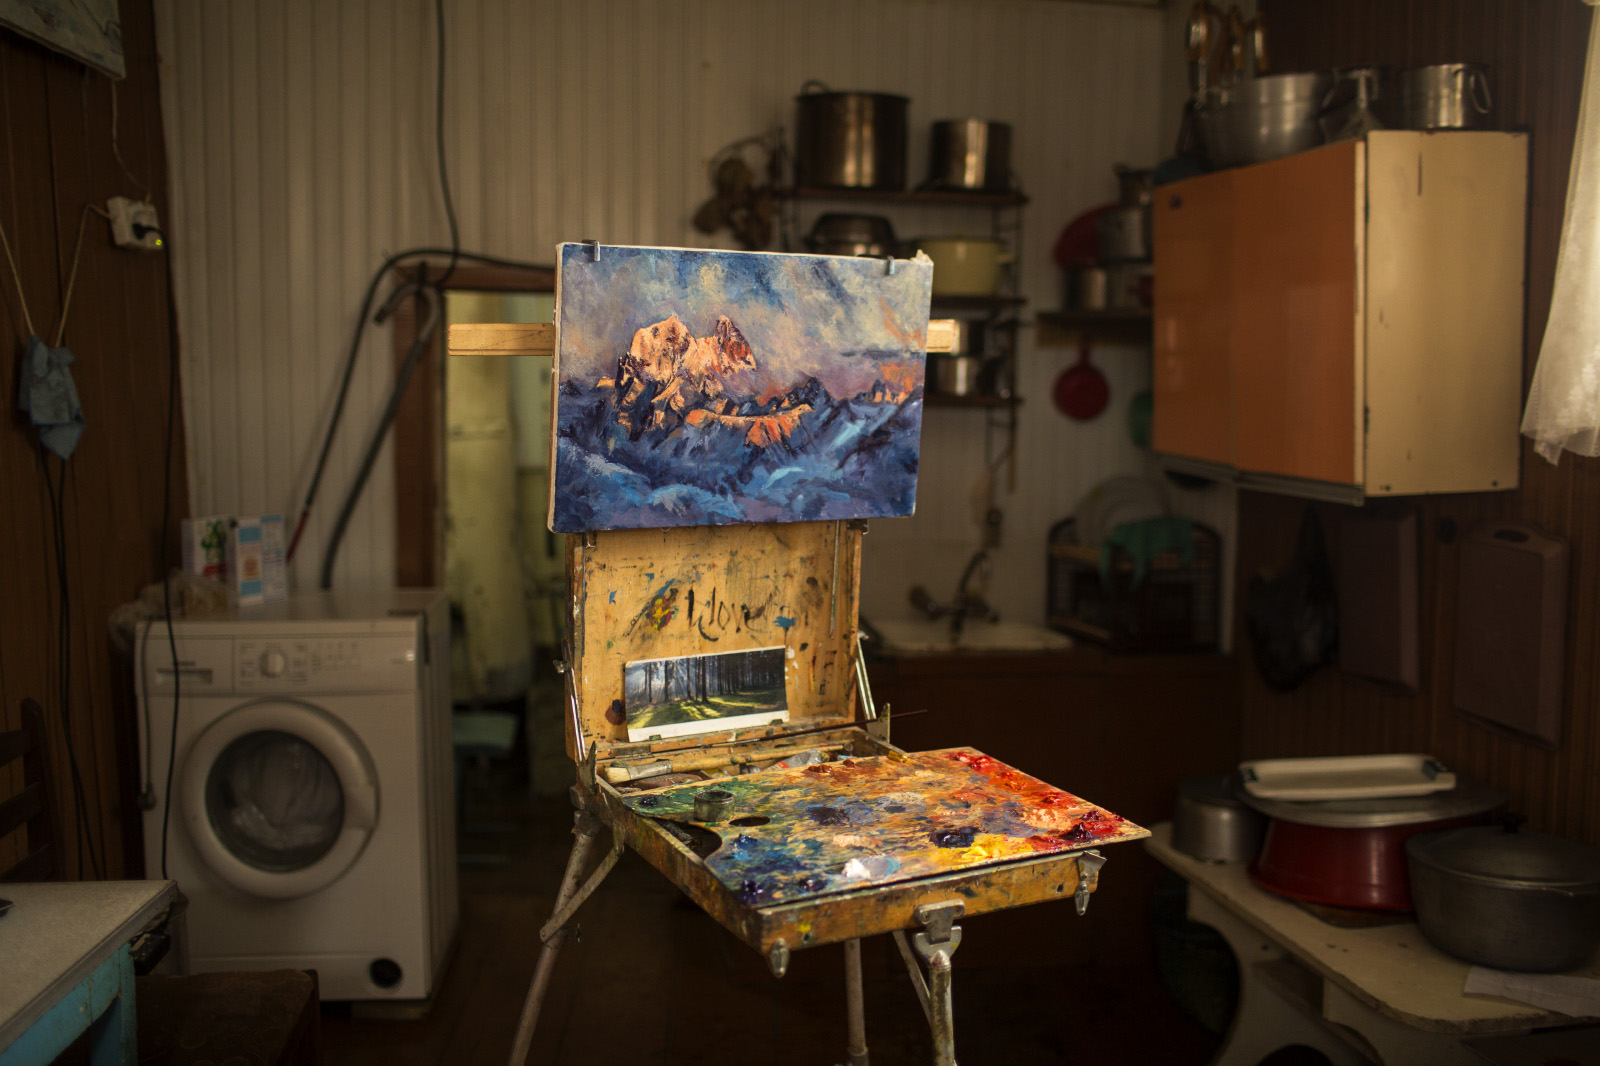 Misha Mchedliani paints in his kitchen in the village of